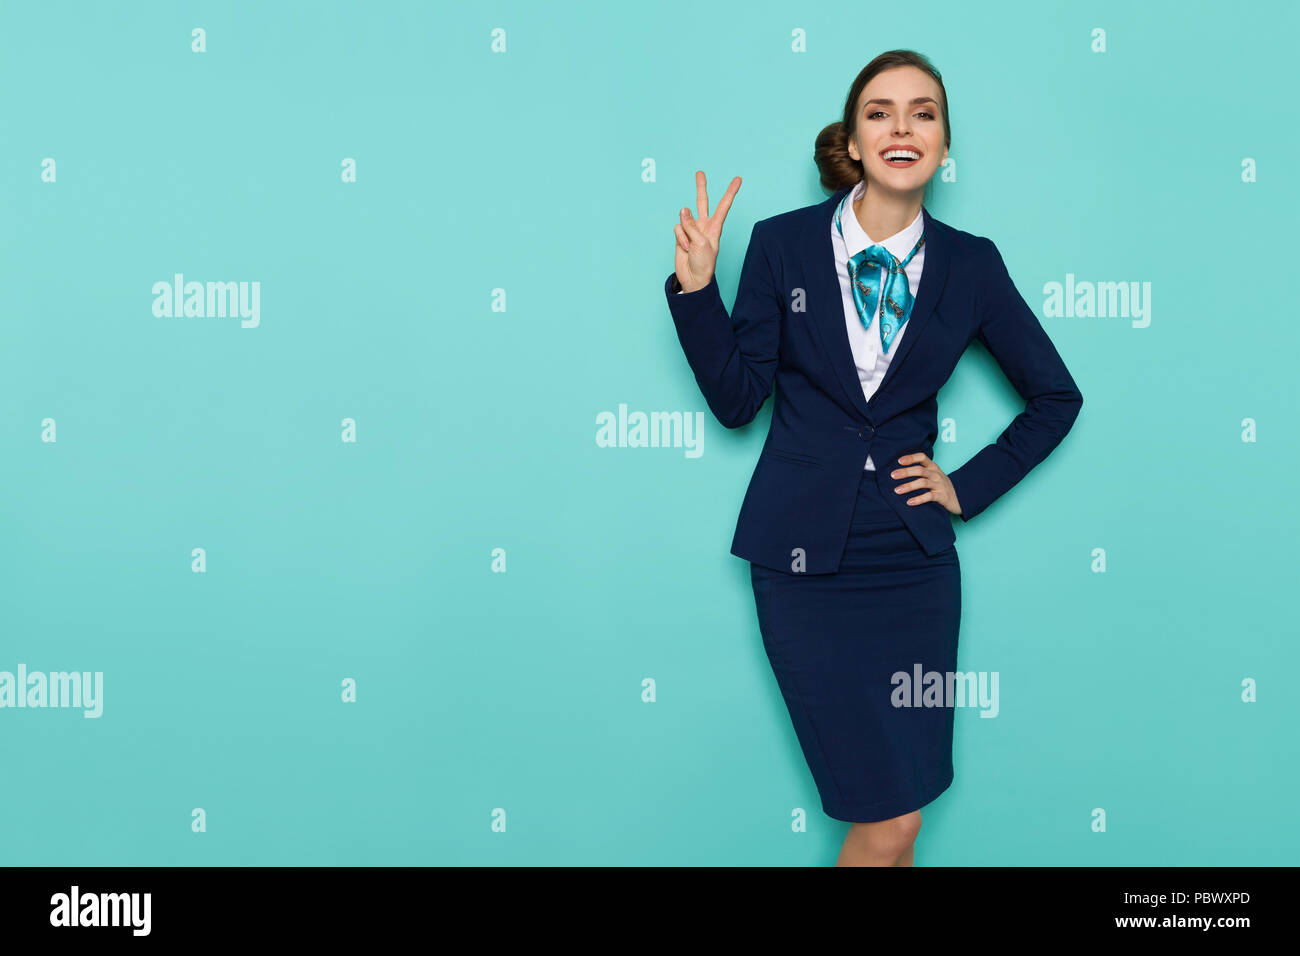 Smiling stewardess in blue formal wear is showing peace hand sign and looking at camera. Three quarter length studio shot on turquoise background. - Stock Image